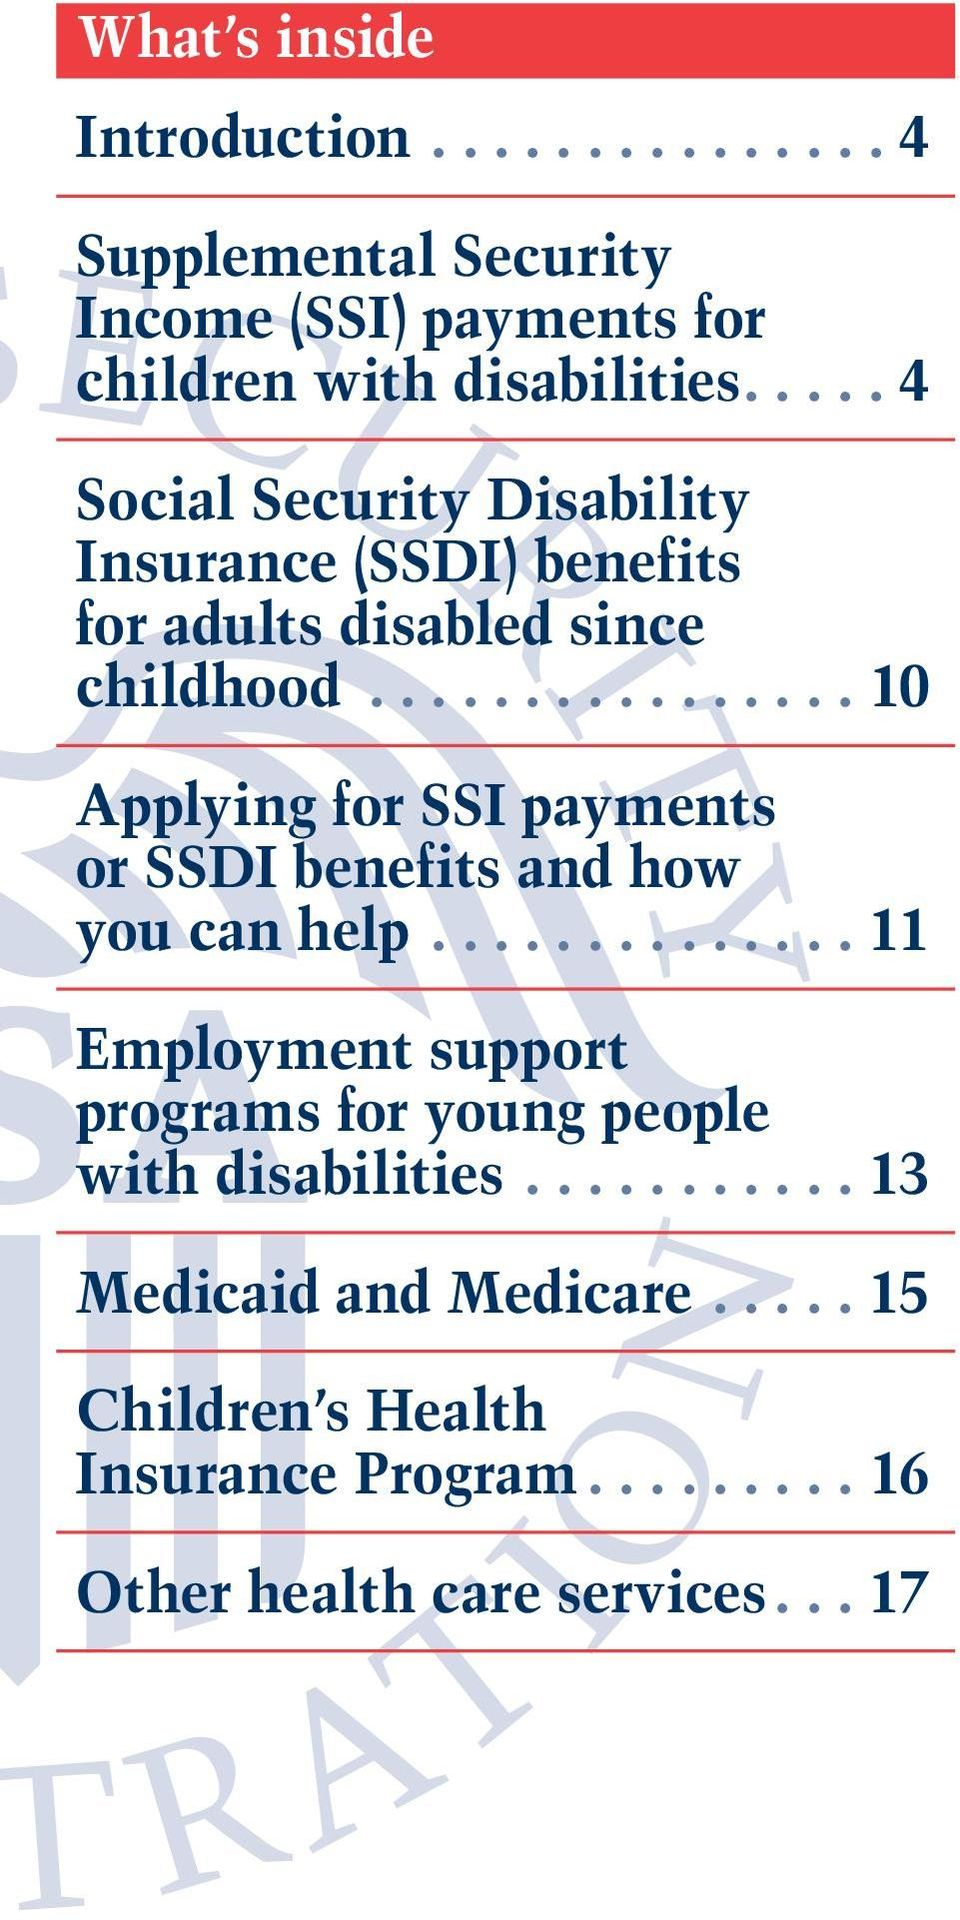 ..10 Applying for SSI payments or SSDI benefits and how you can help.